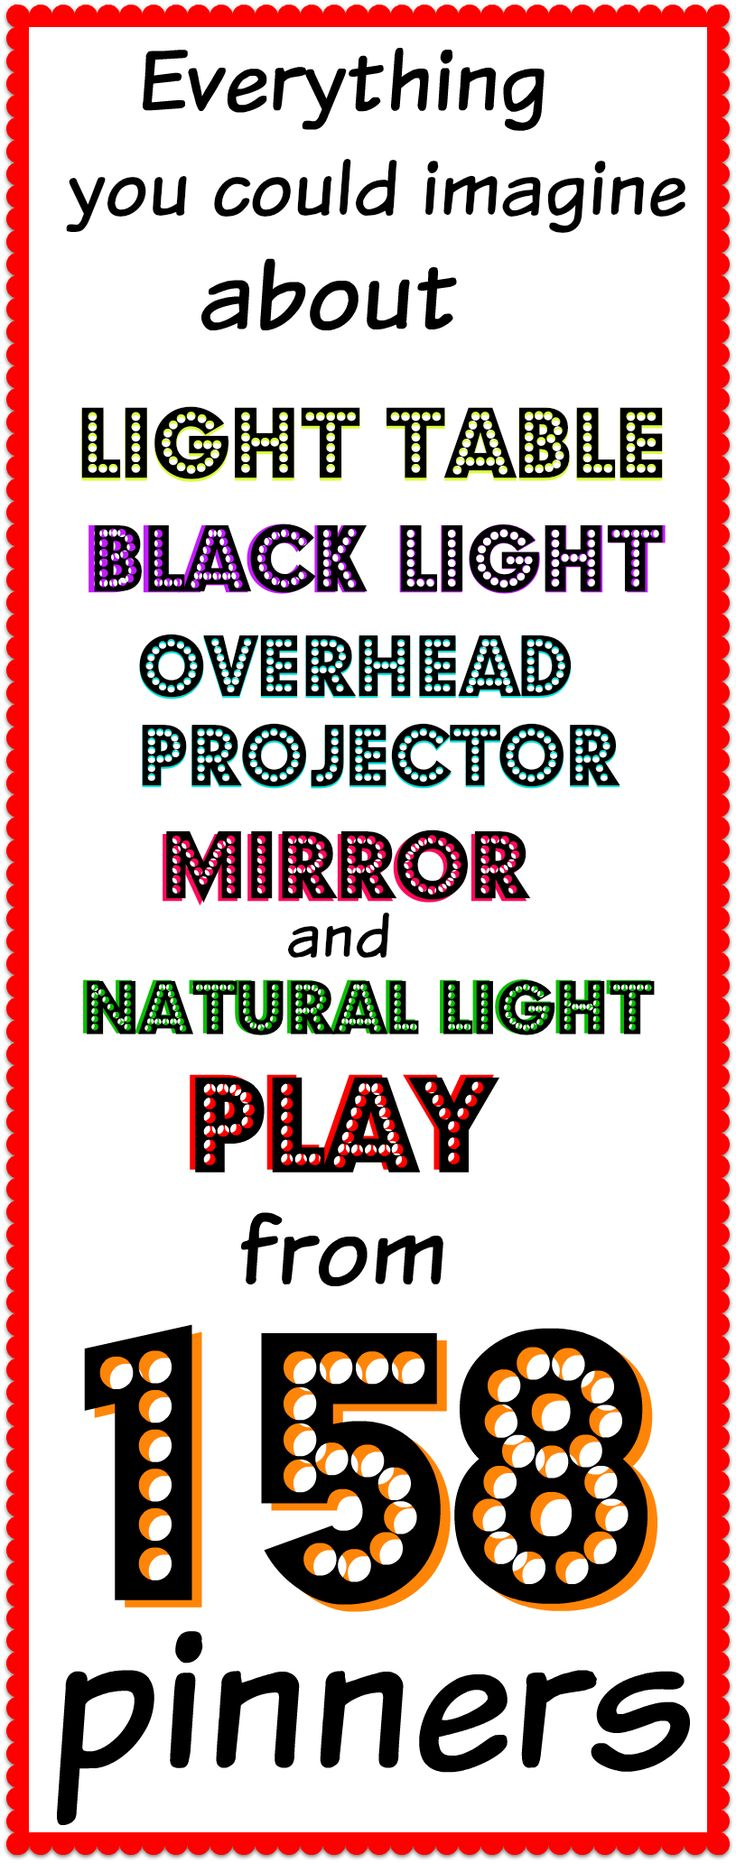 Everything you could imagine about Light Table Play, Black Light Play, Glow-in-the-dark Play, Overhead Projector Play, Mirror Play, Natural Light Play, and much more all in one spot from ONE-HUNDRED-AND-FIFTY-EIGHT PINNERS!!! The Light Play Jackpot!